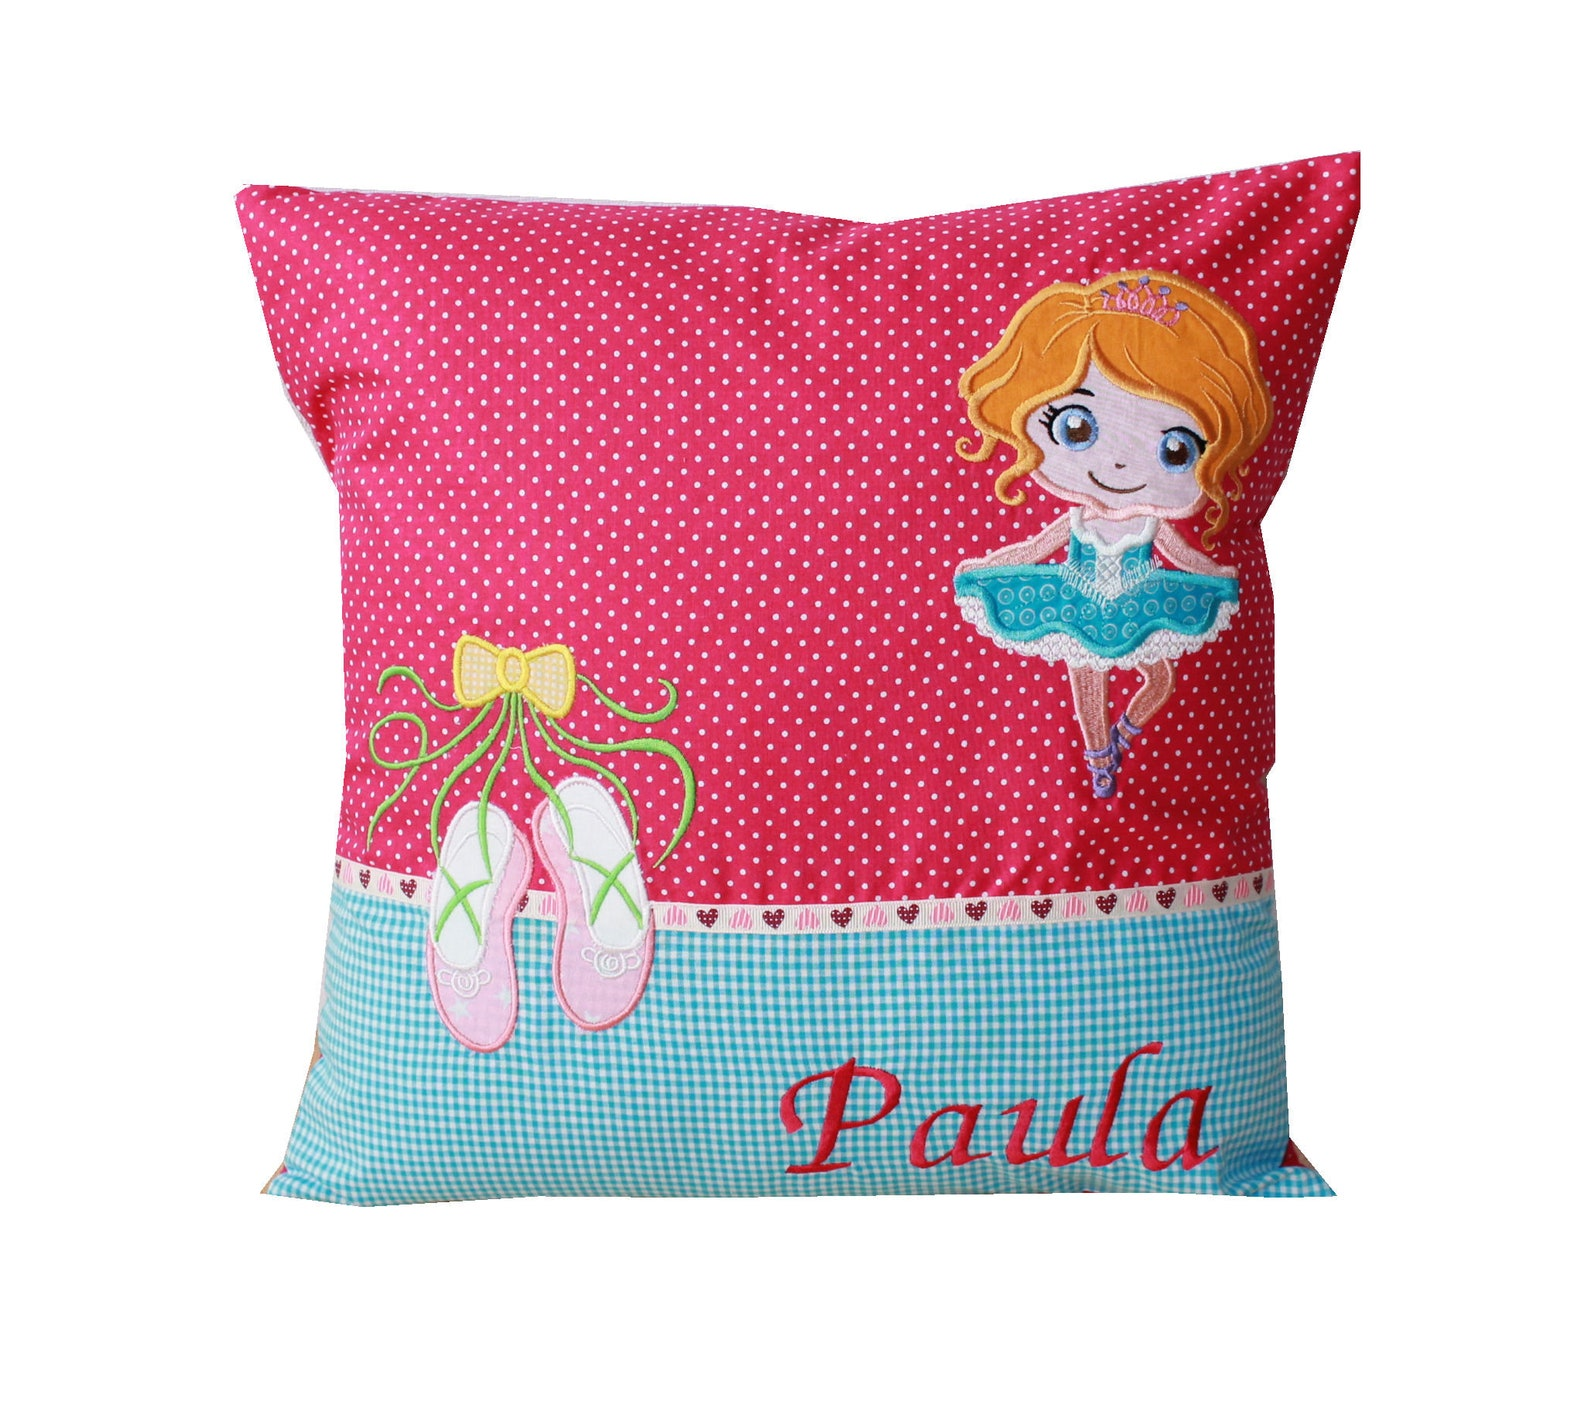 personalized name pillow, cuddly pillow with ballerina, ballet shoes and wish name